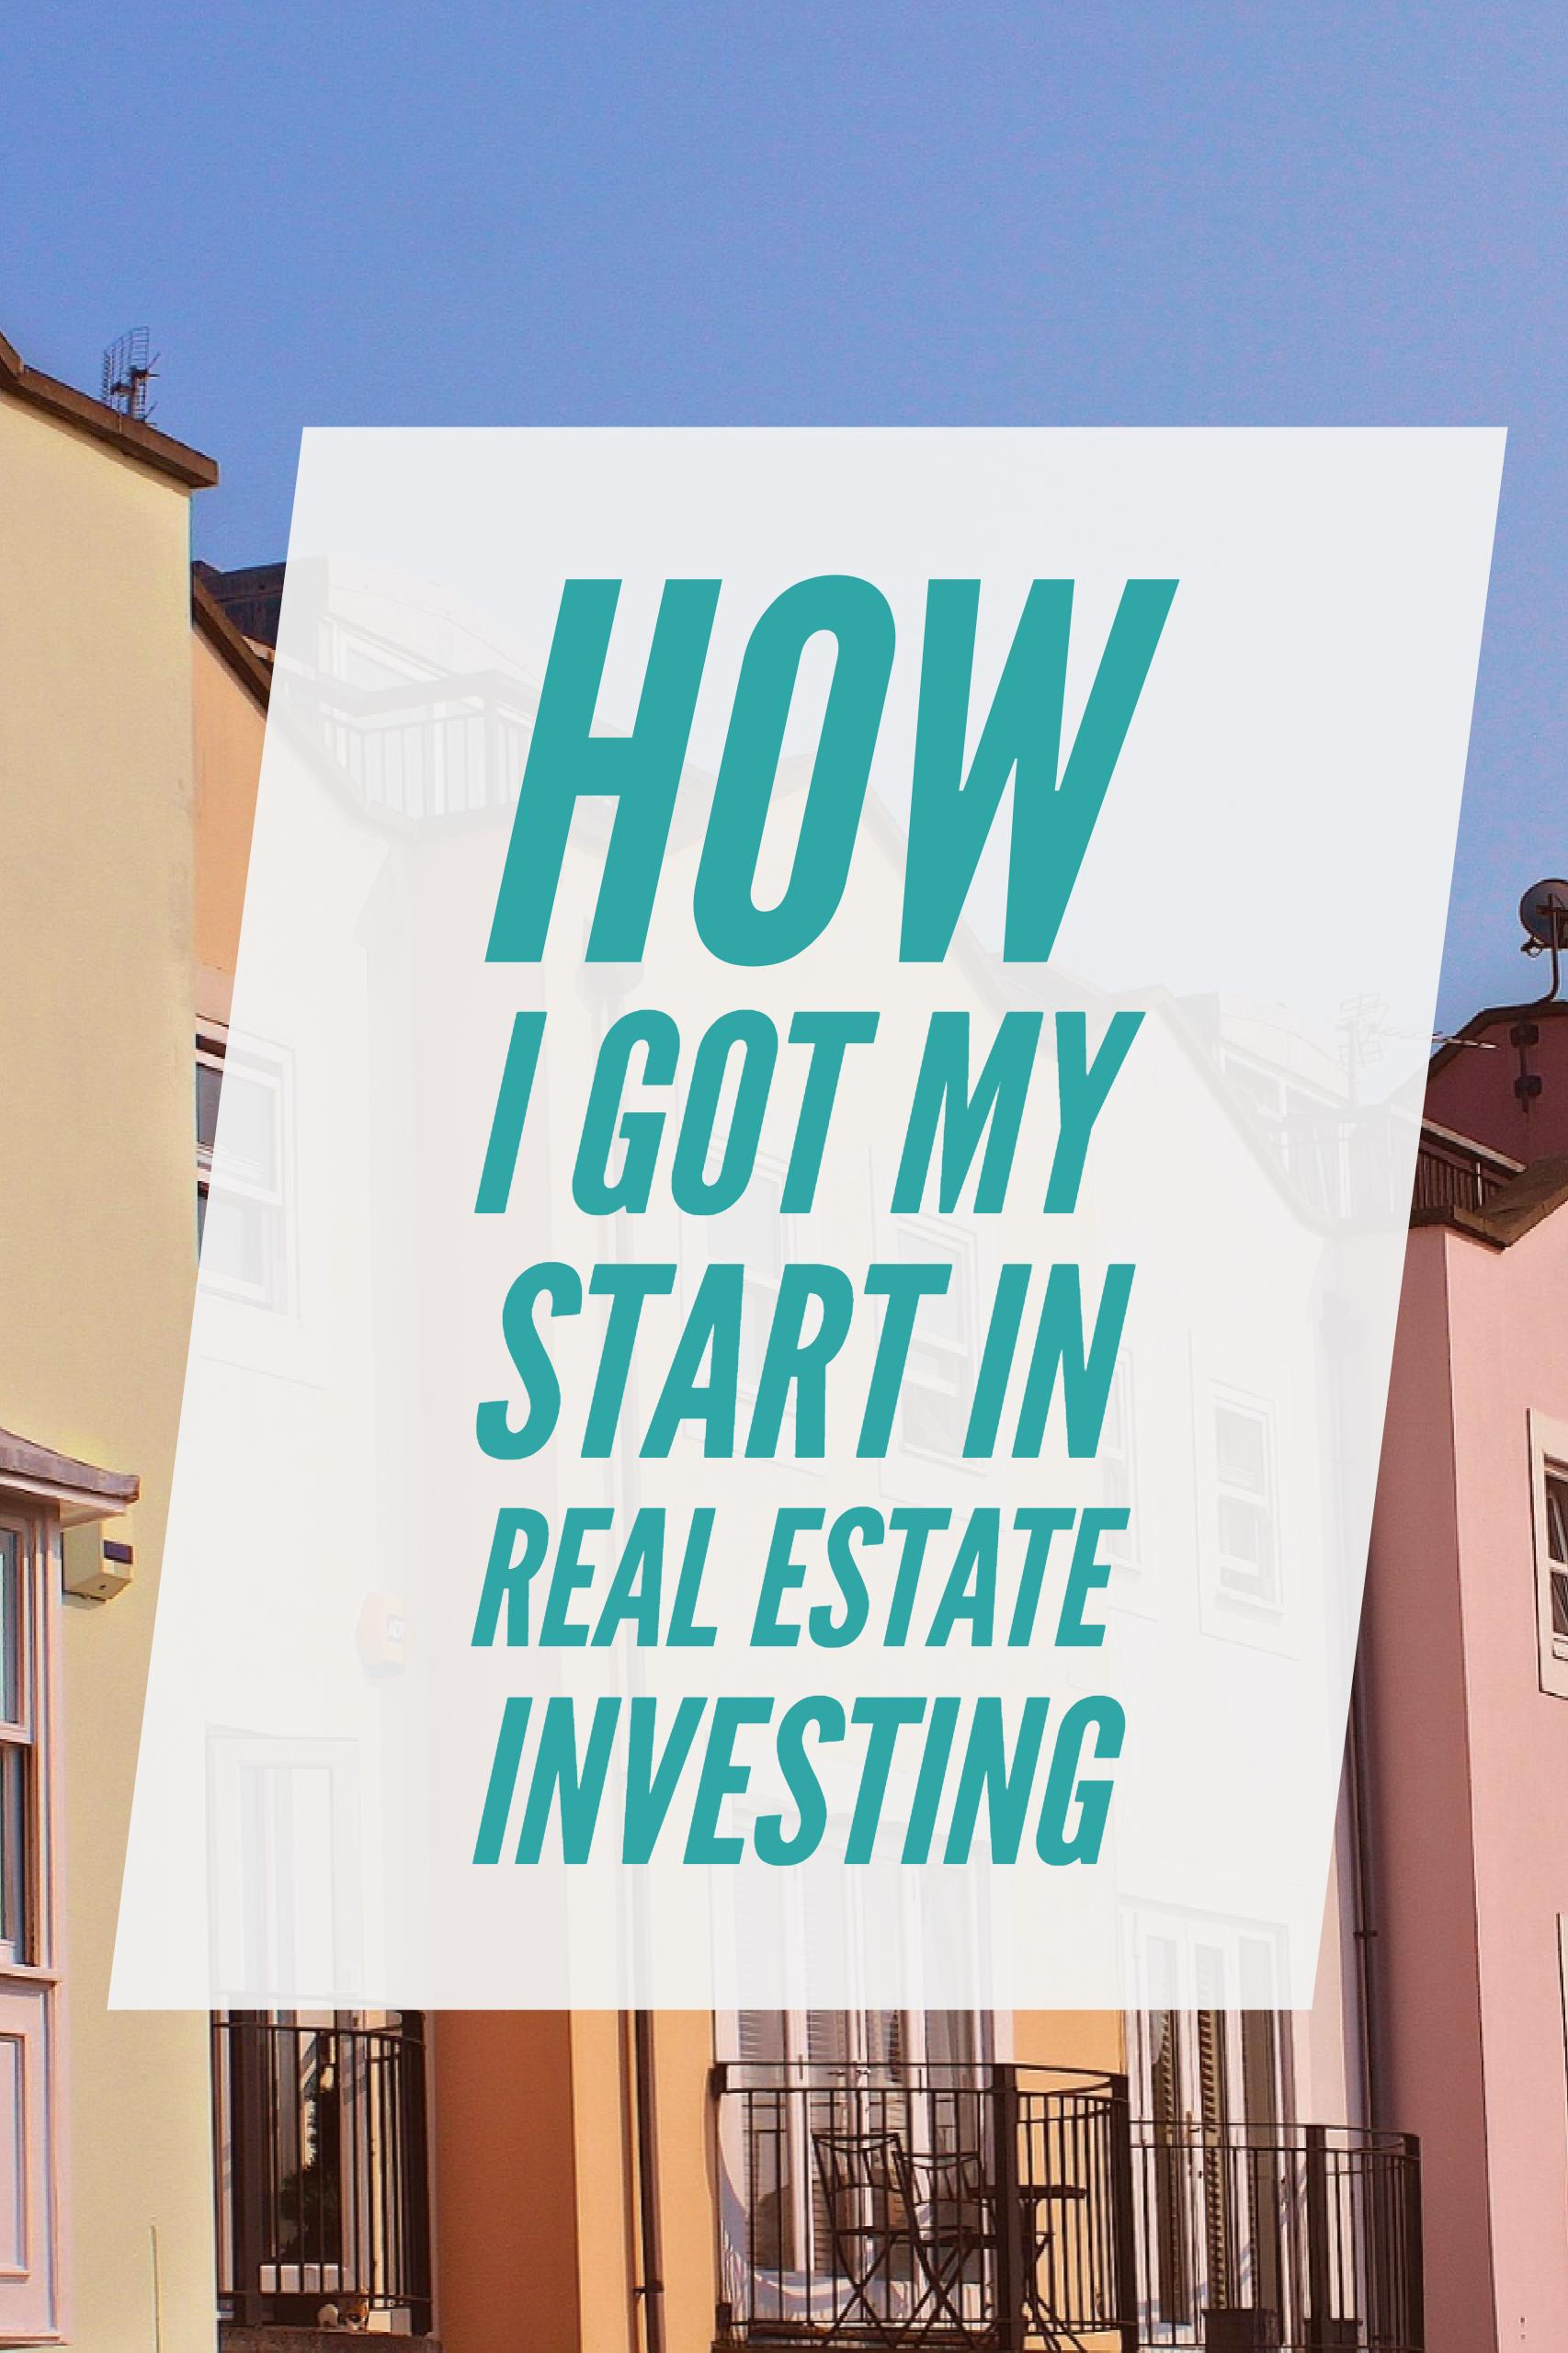 I love investing in real estate. It's a good mix of solid returns, monthly cashflow, and things I can touch. My start wasn't spectacular, but gives insight into how anyone can get their start investing in real estate. If you have been considering adding real estate to your portfolio, let my personal story guide your decision.